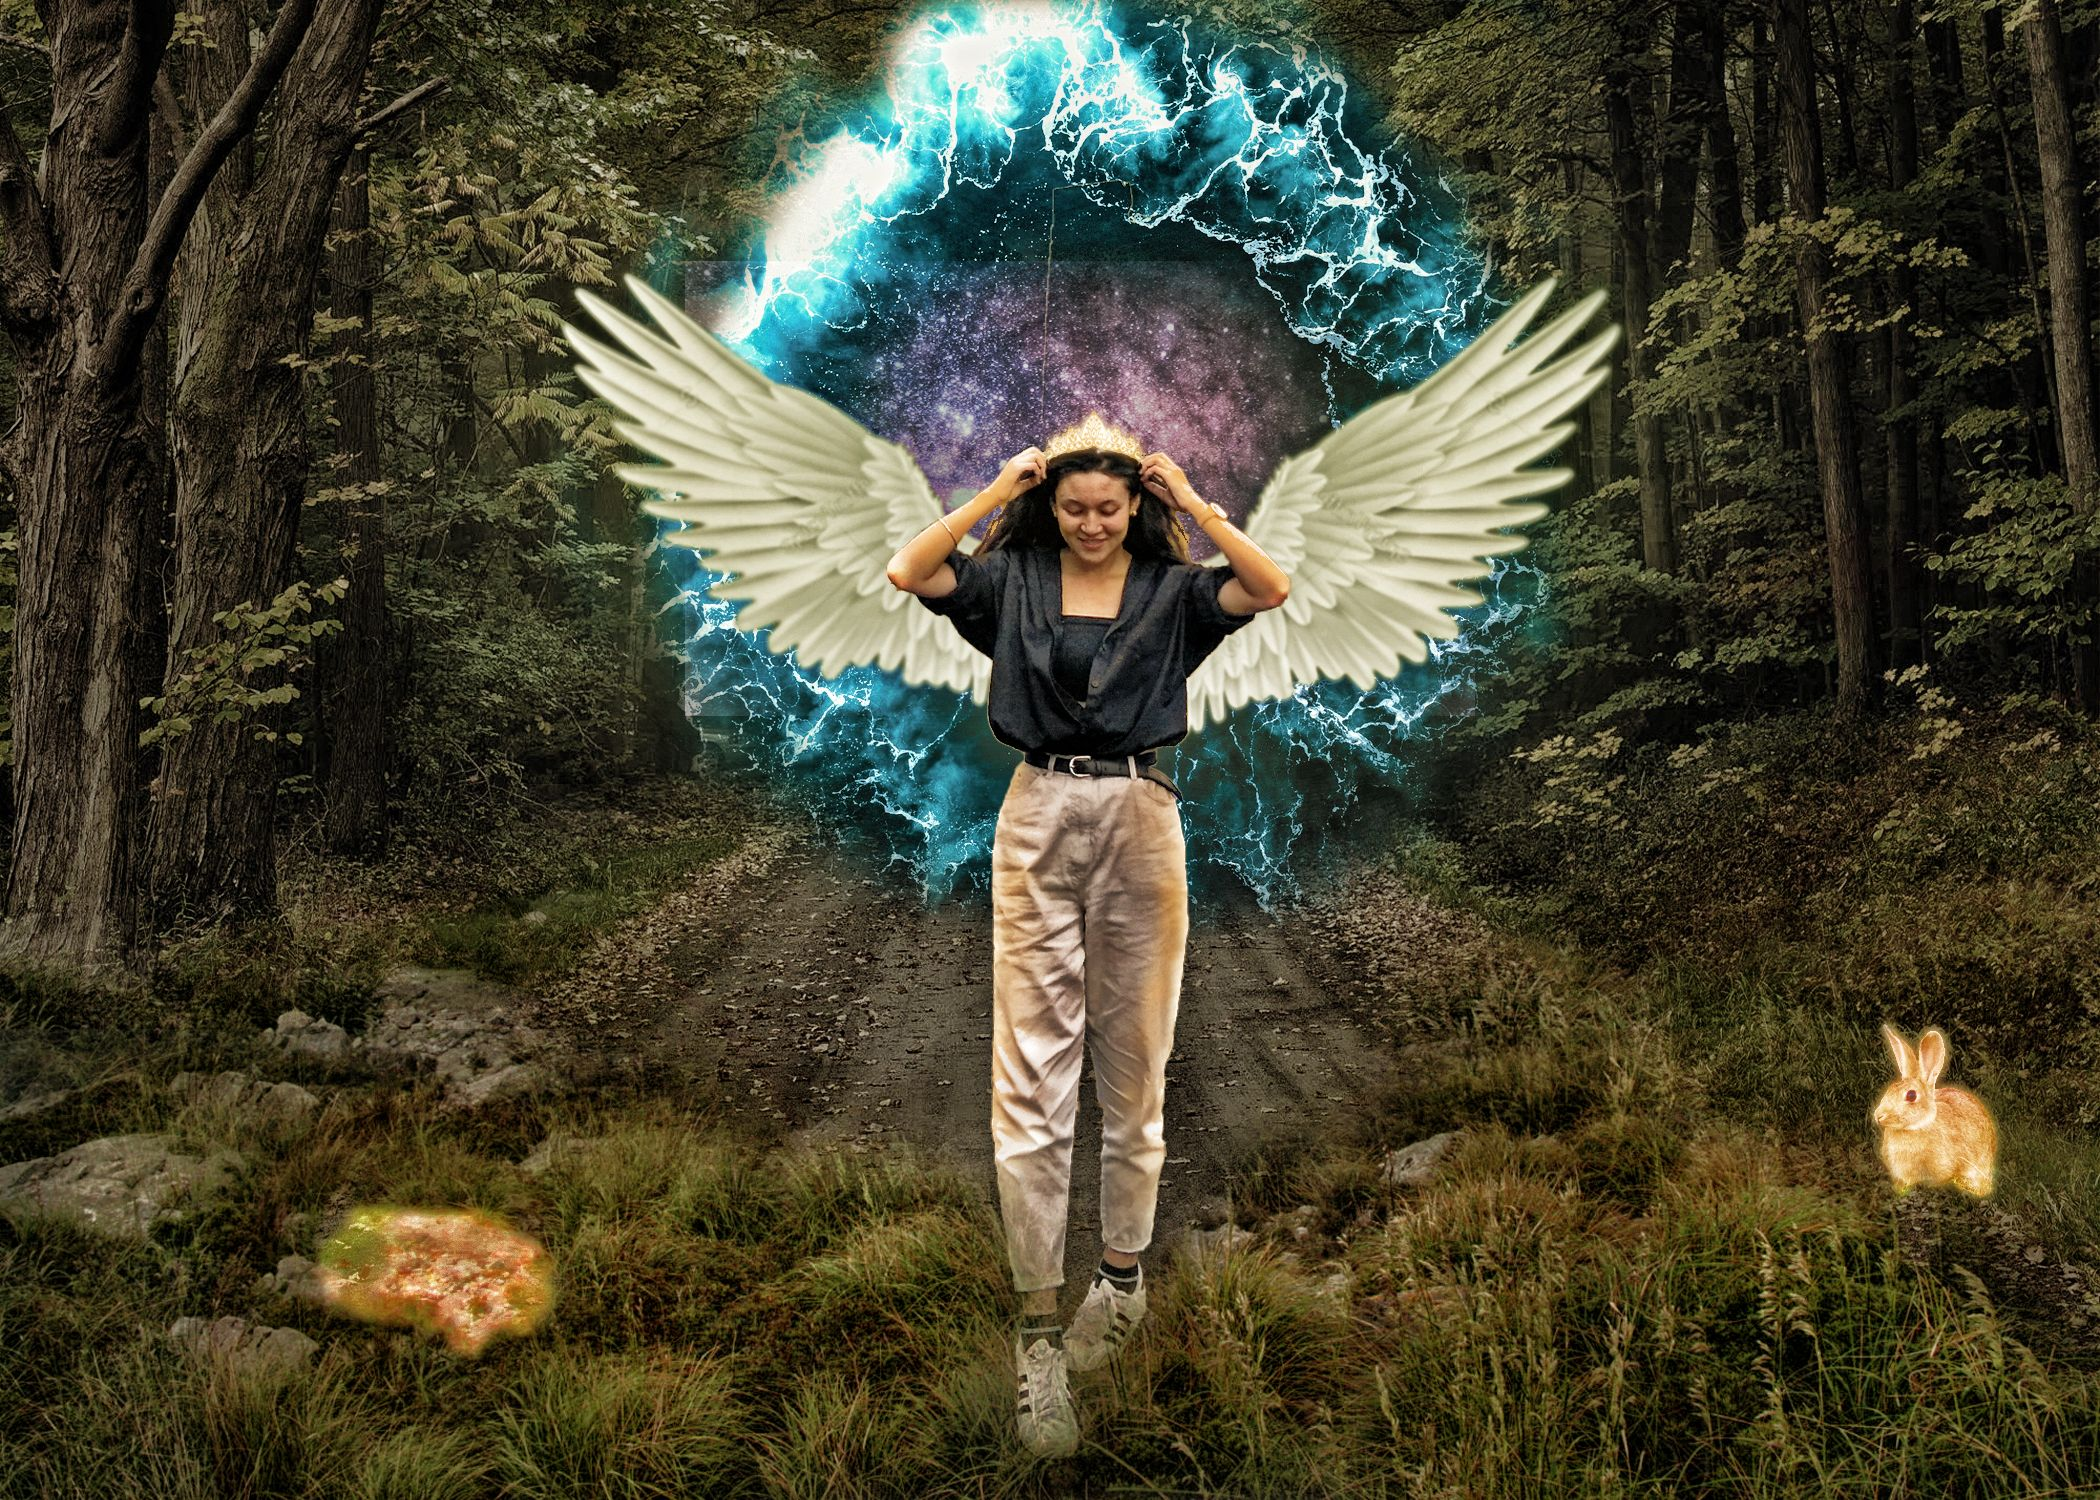 I will do amazing Photoshop editing for you with amazing effects.